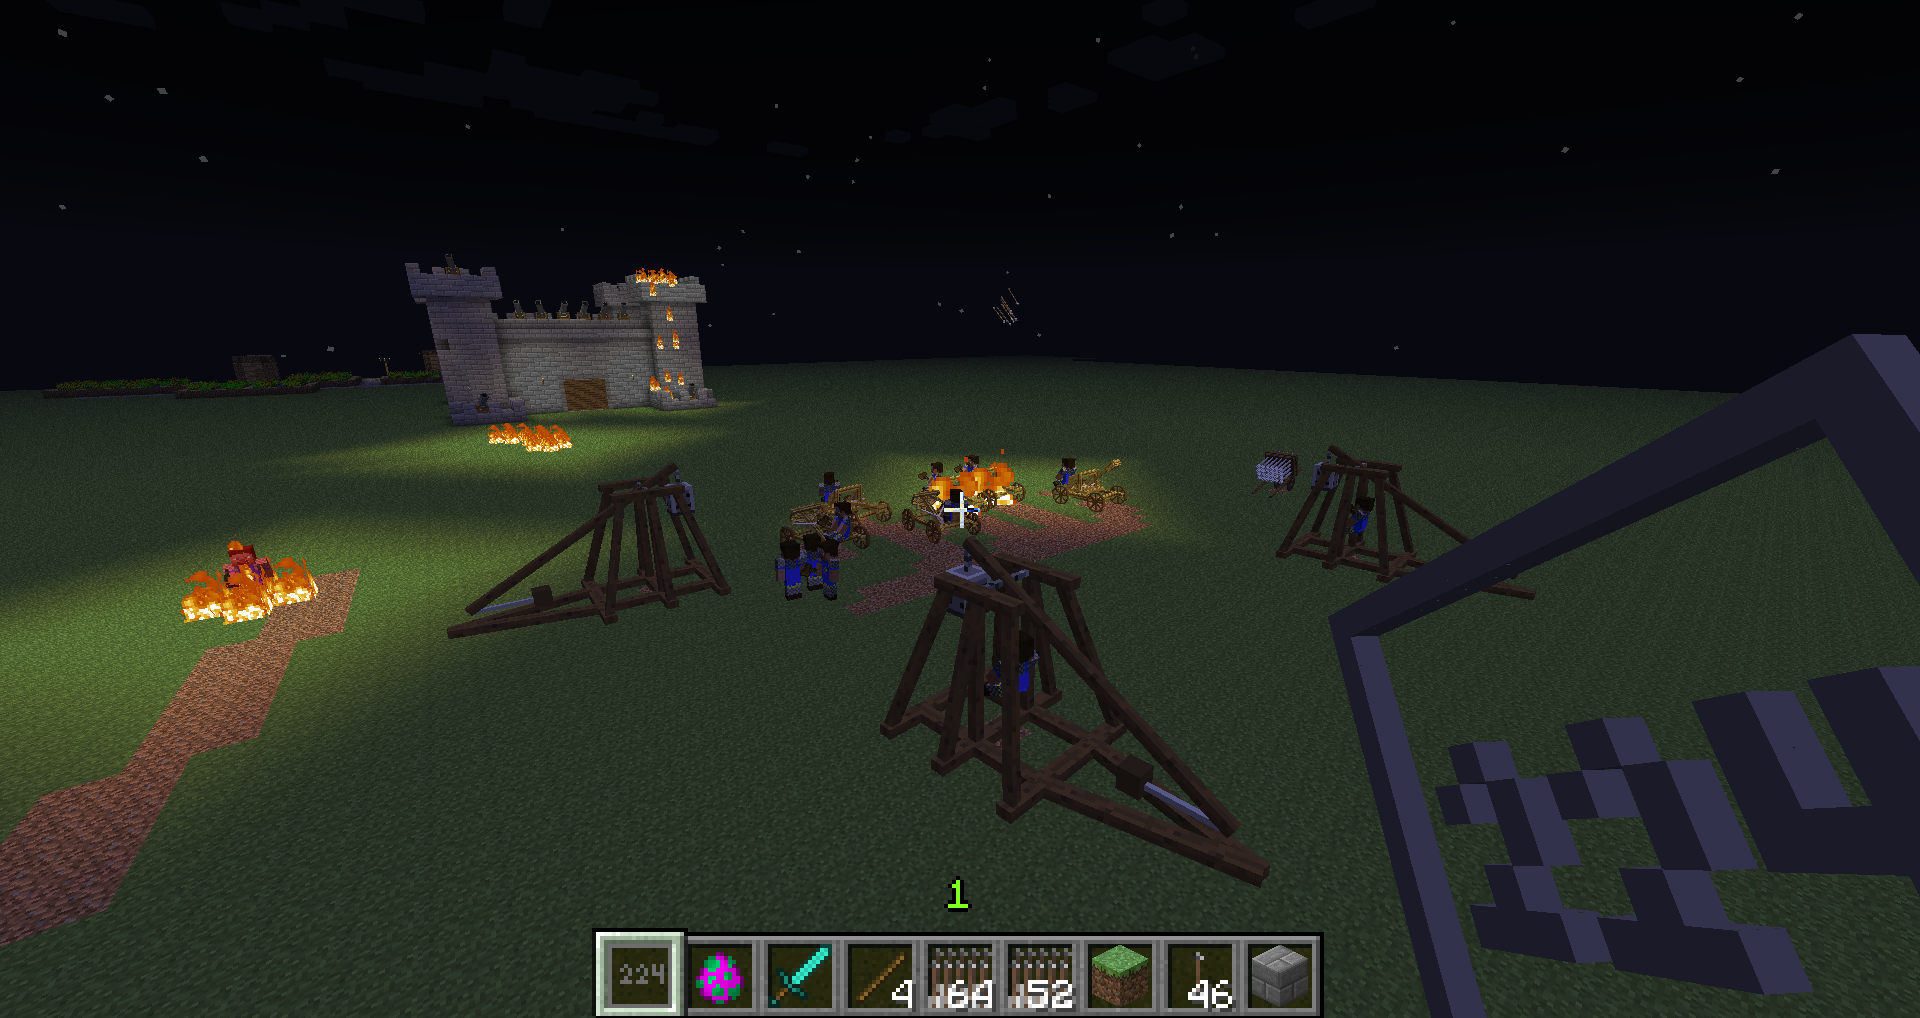 http://minecraft-forum.net/wp-content/uploads/2013/04/ae94e__img_LR_night_siege.png